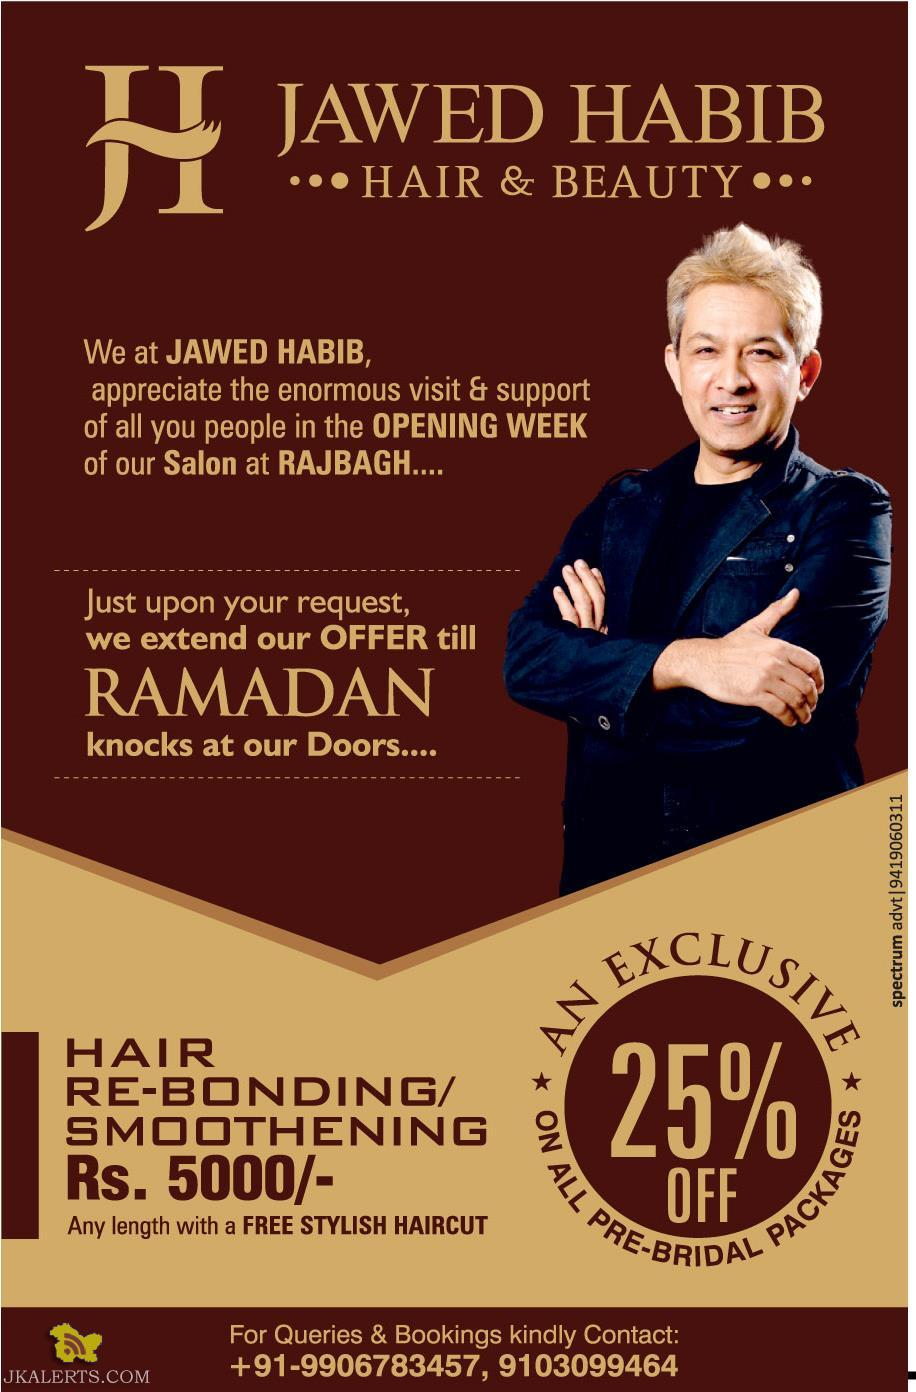 JAWED HABIB HAIR & BEAUTY offer 25% off